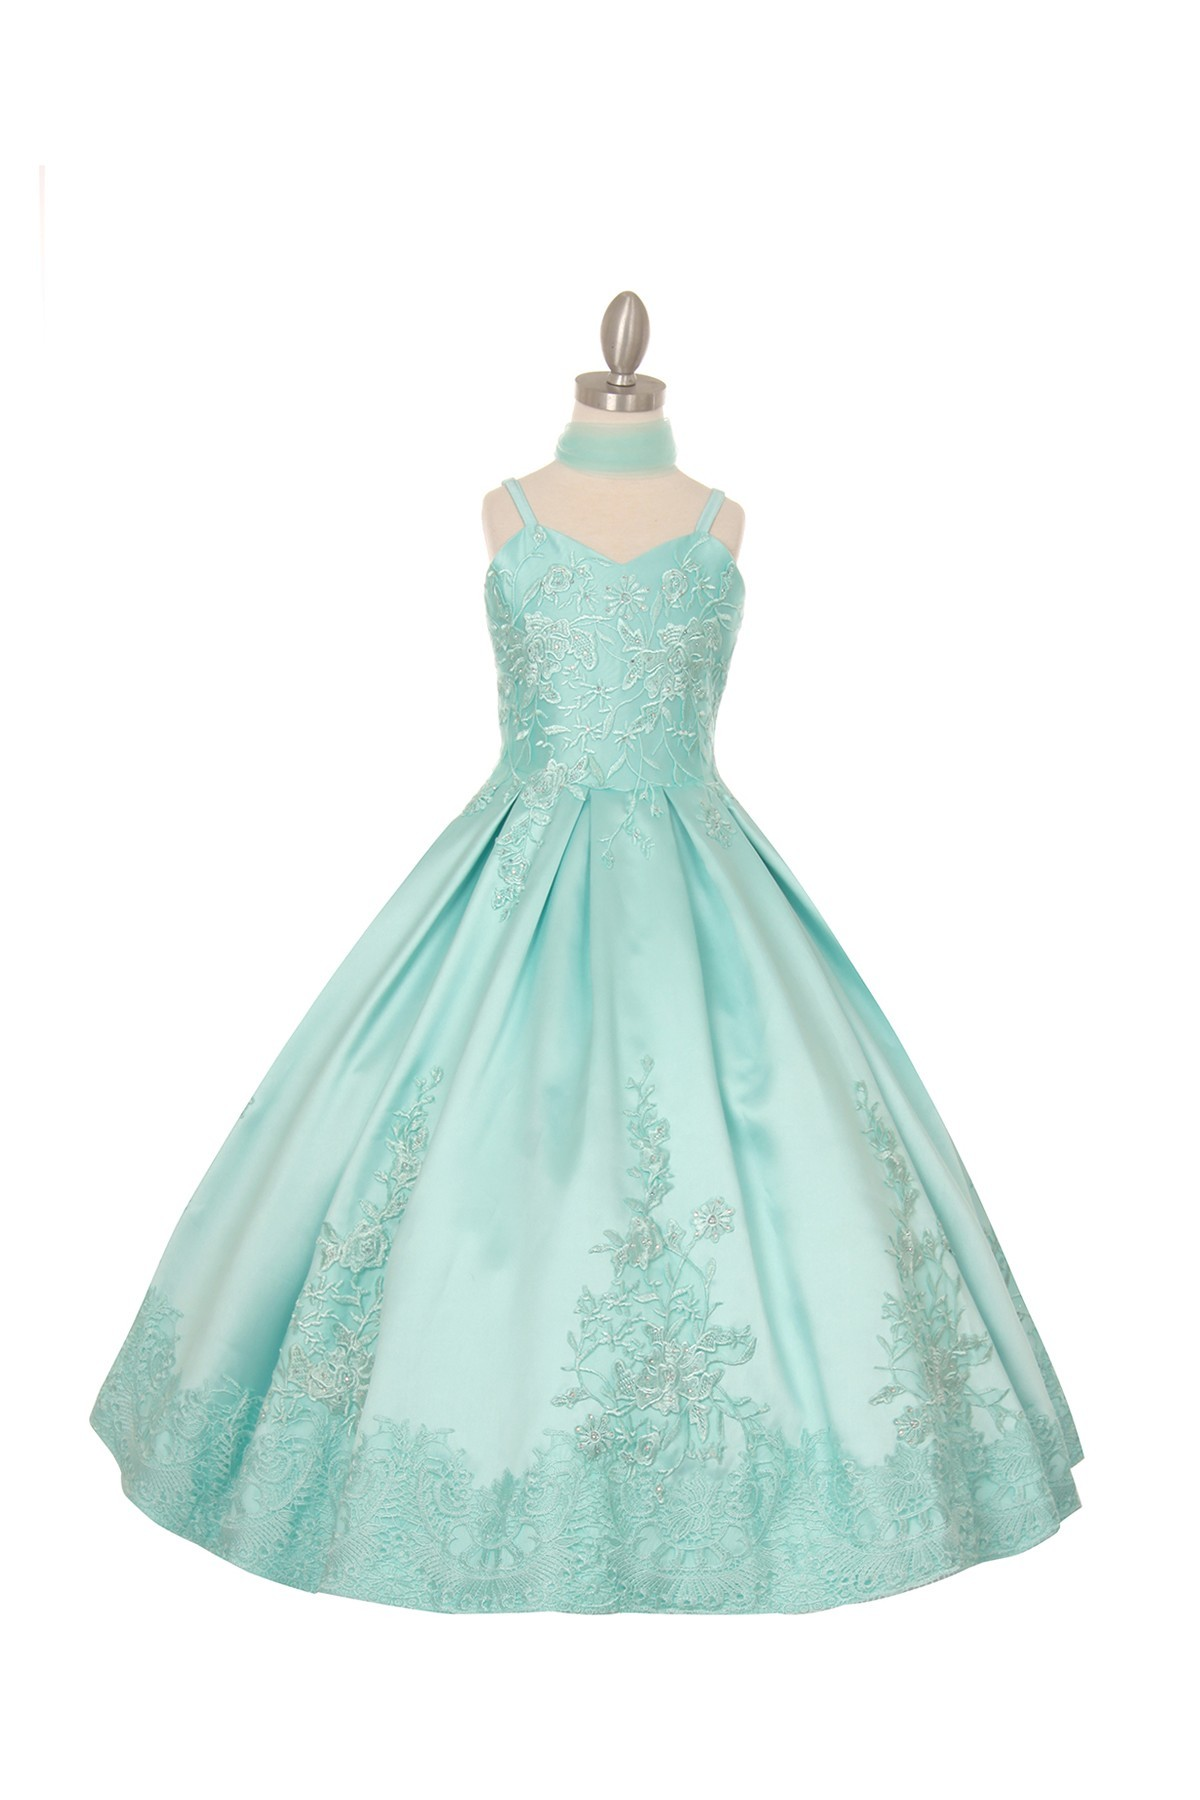 Junior bridesmaids long sweetheart embroidery rhinestone dress.